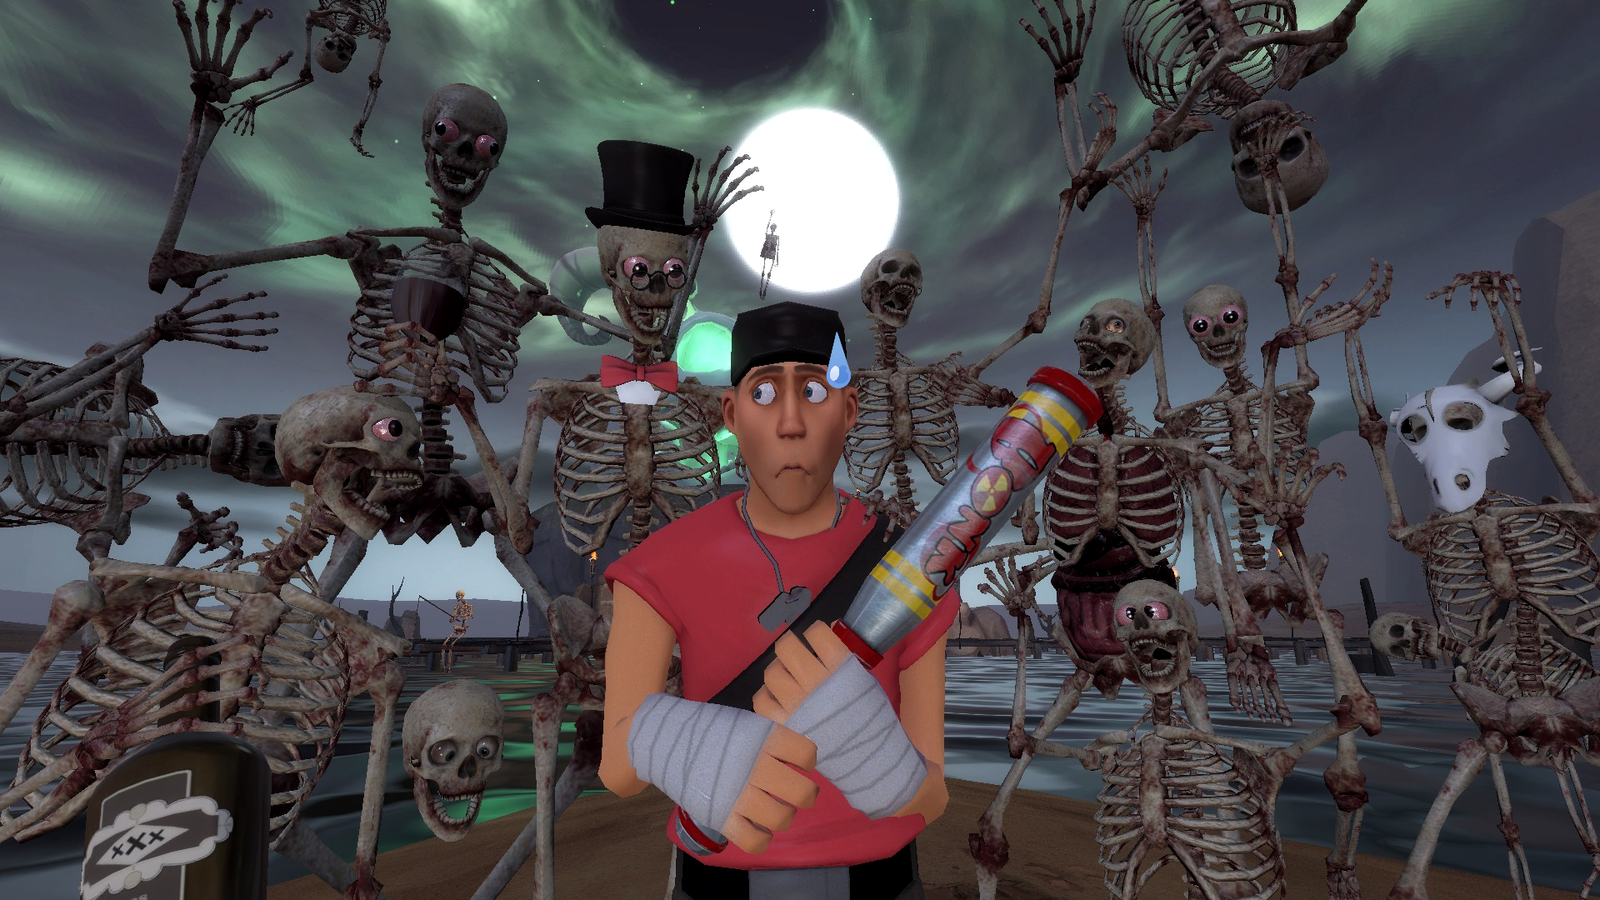 Spooky scary skeletons contest by samuraiknight 1600 on - Scary skeleton games ...